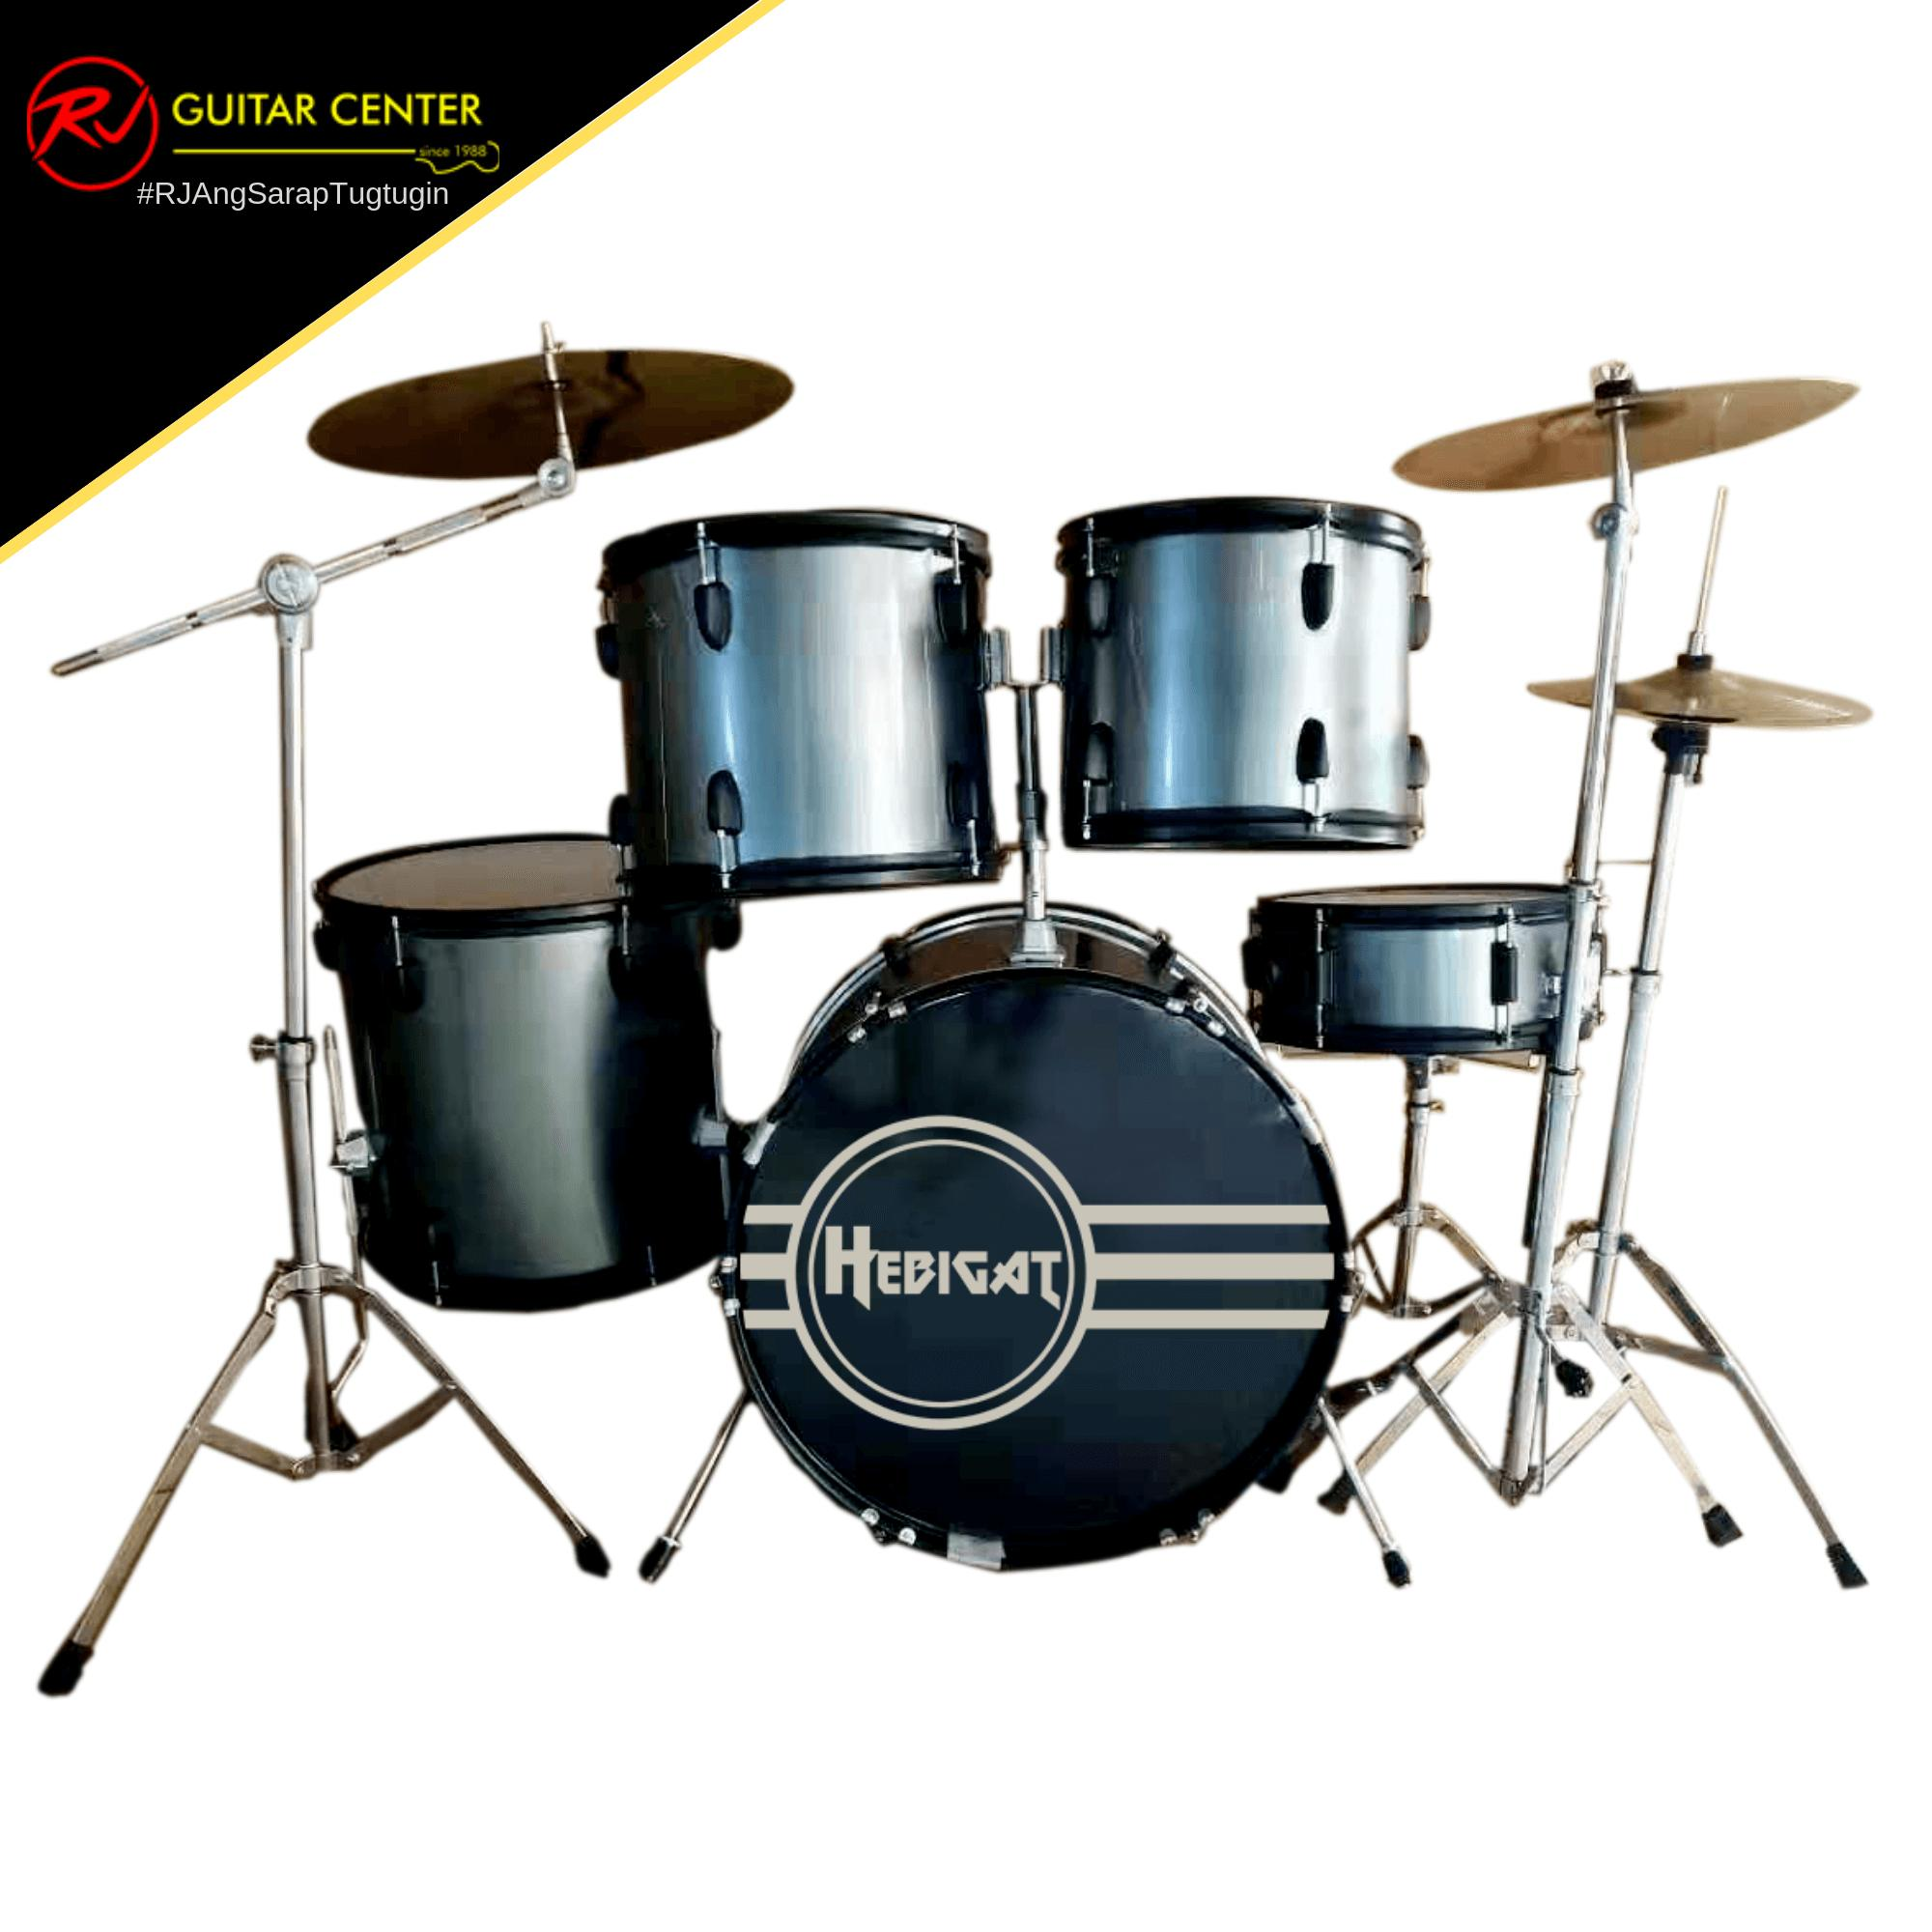 Drum Sets for sale - Rock Band Drums best seller, prices & brands in